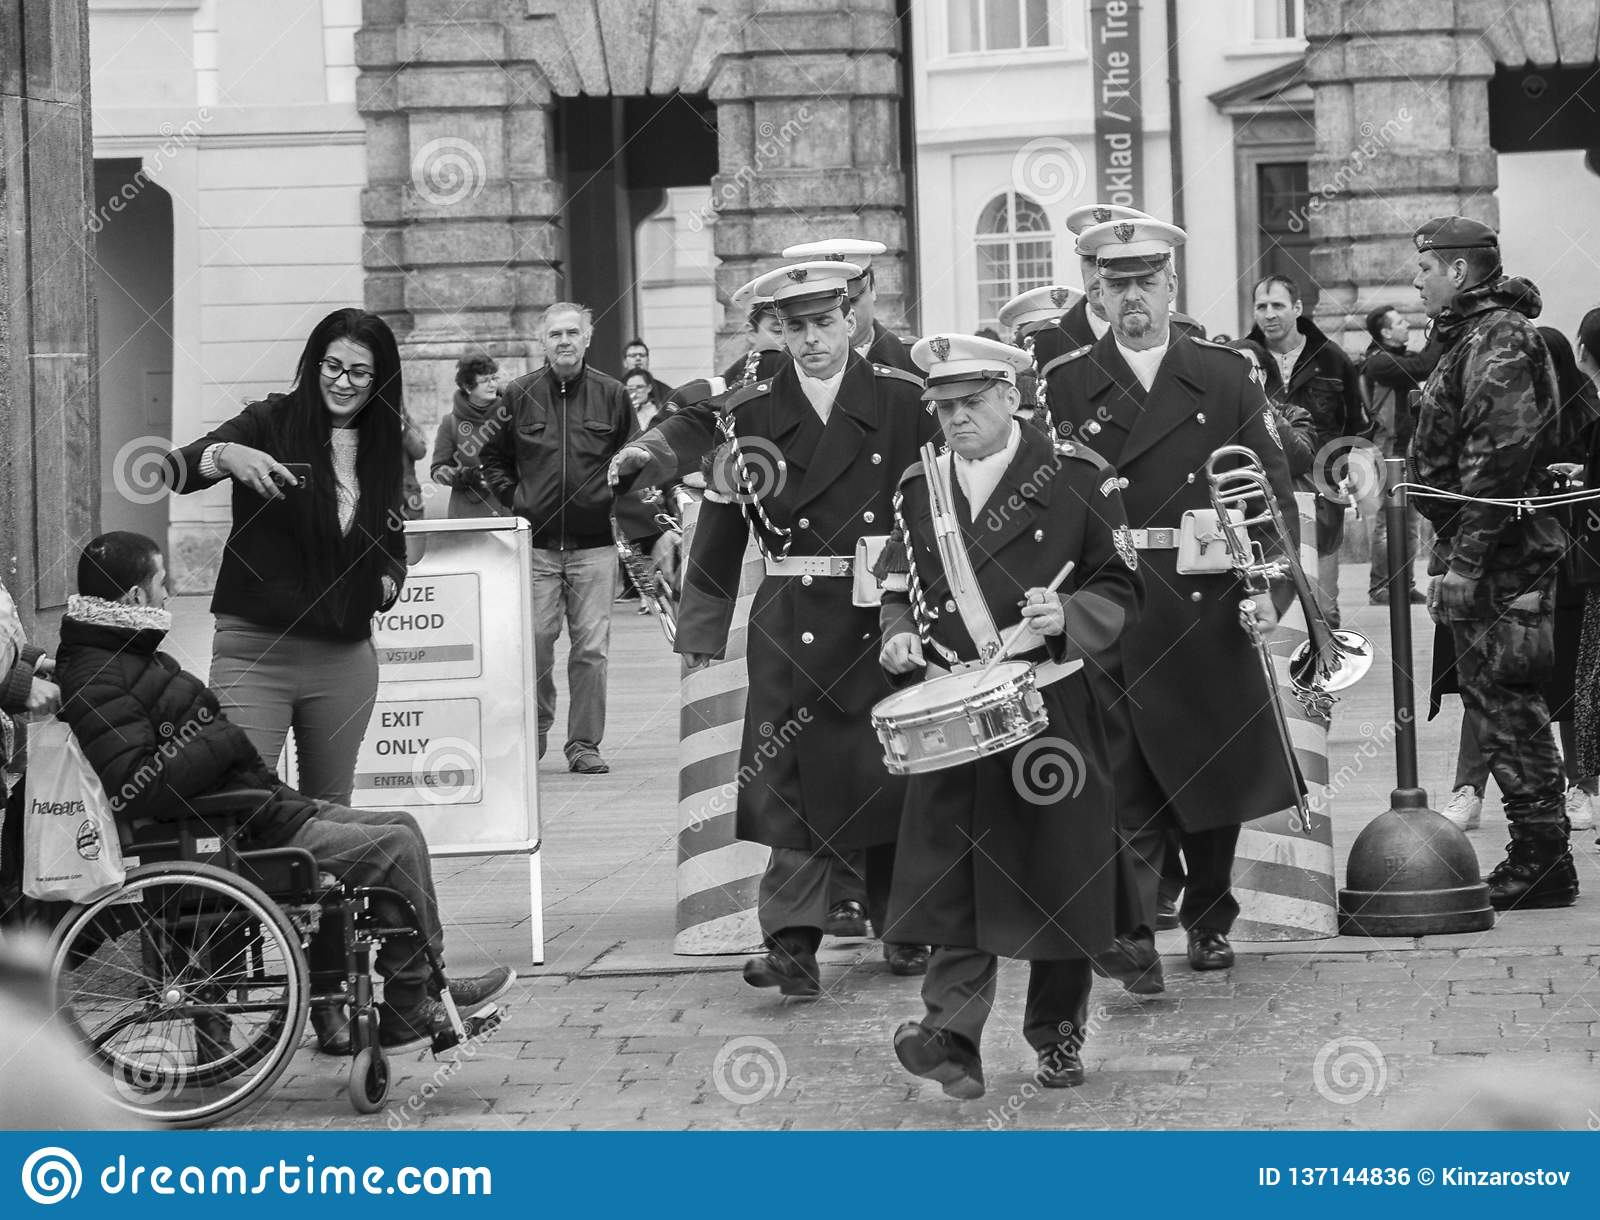 Prague, Czech Republic - March 13, 2017: Military musicians are passing by tourists Black and white image